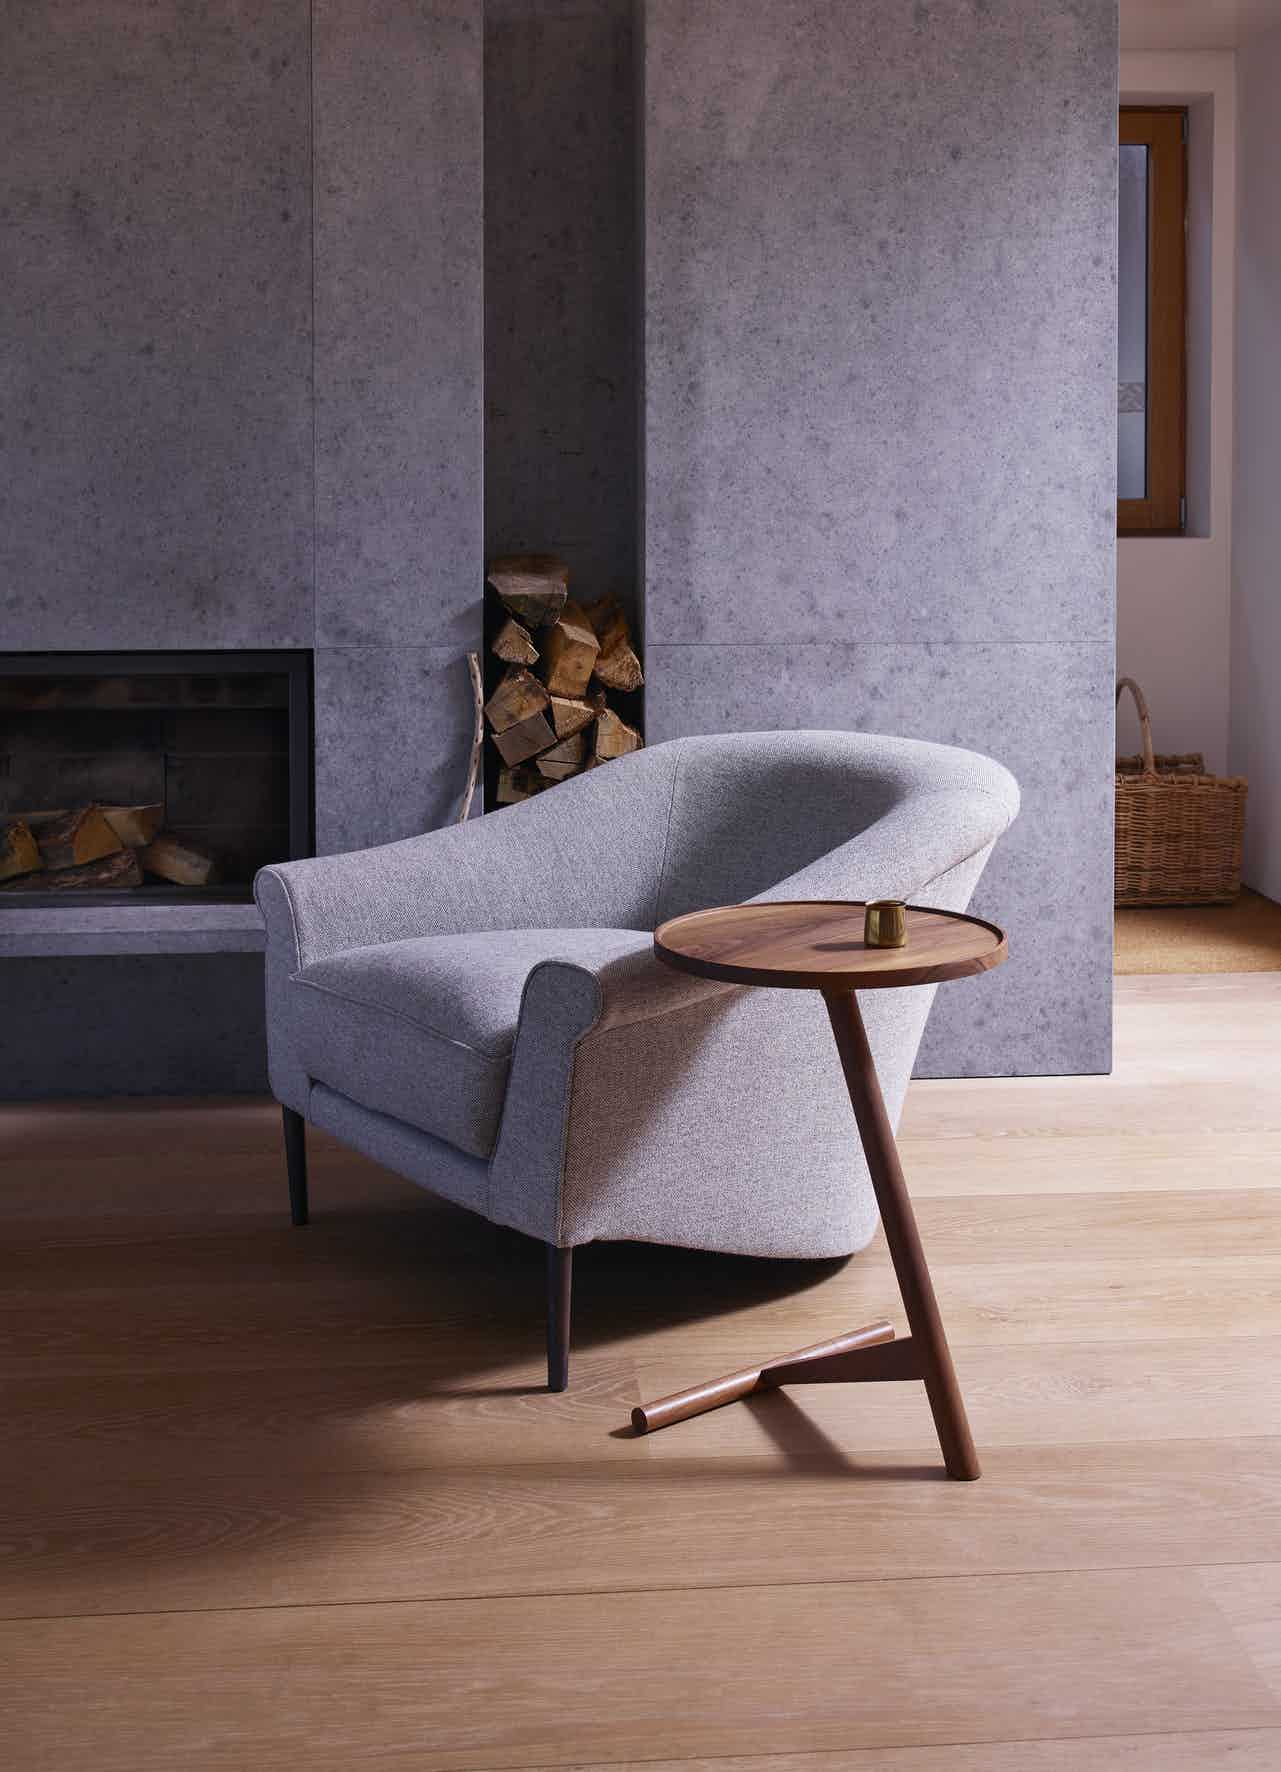 Solstice Armchair By Matthew Hilton For Scp